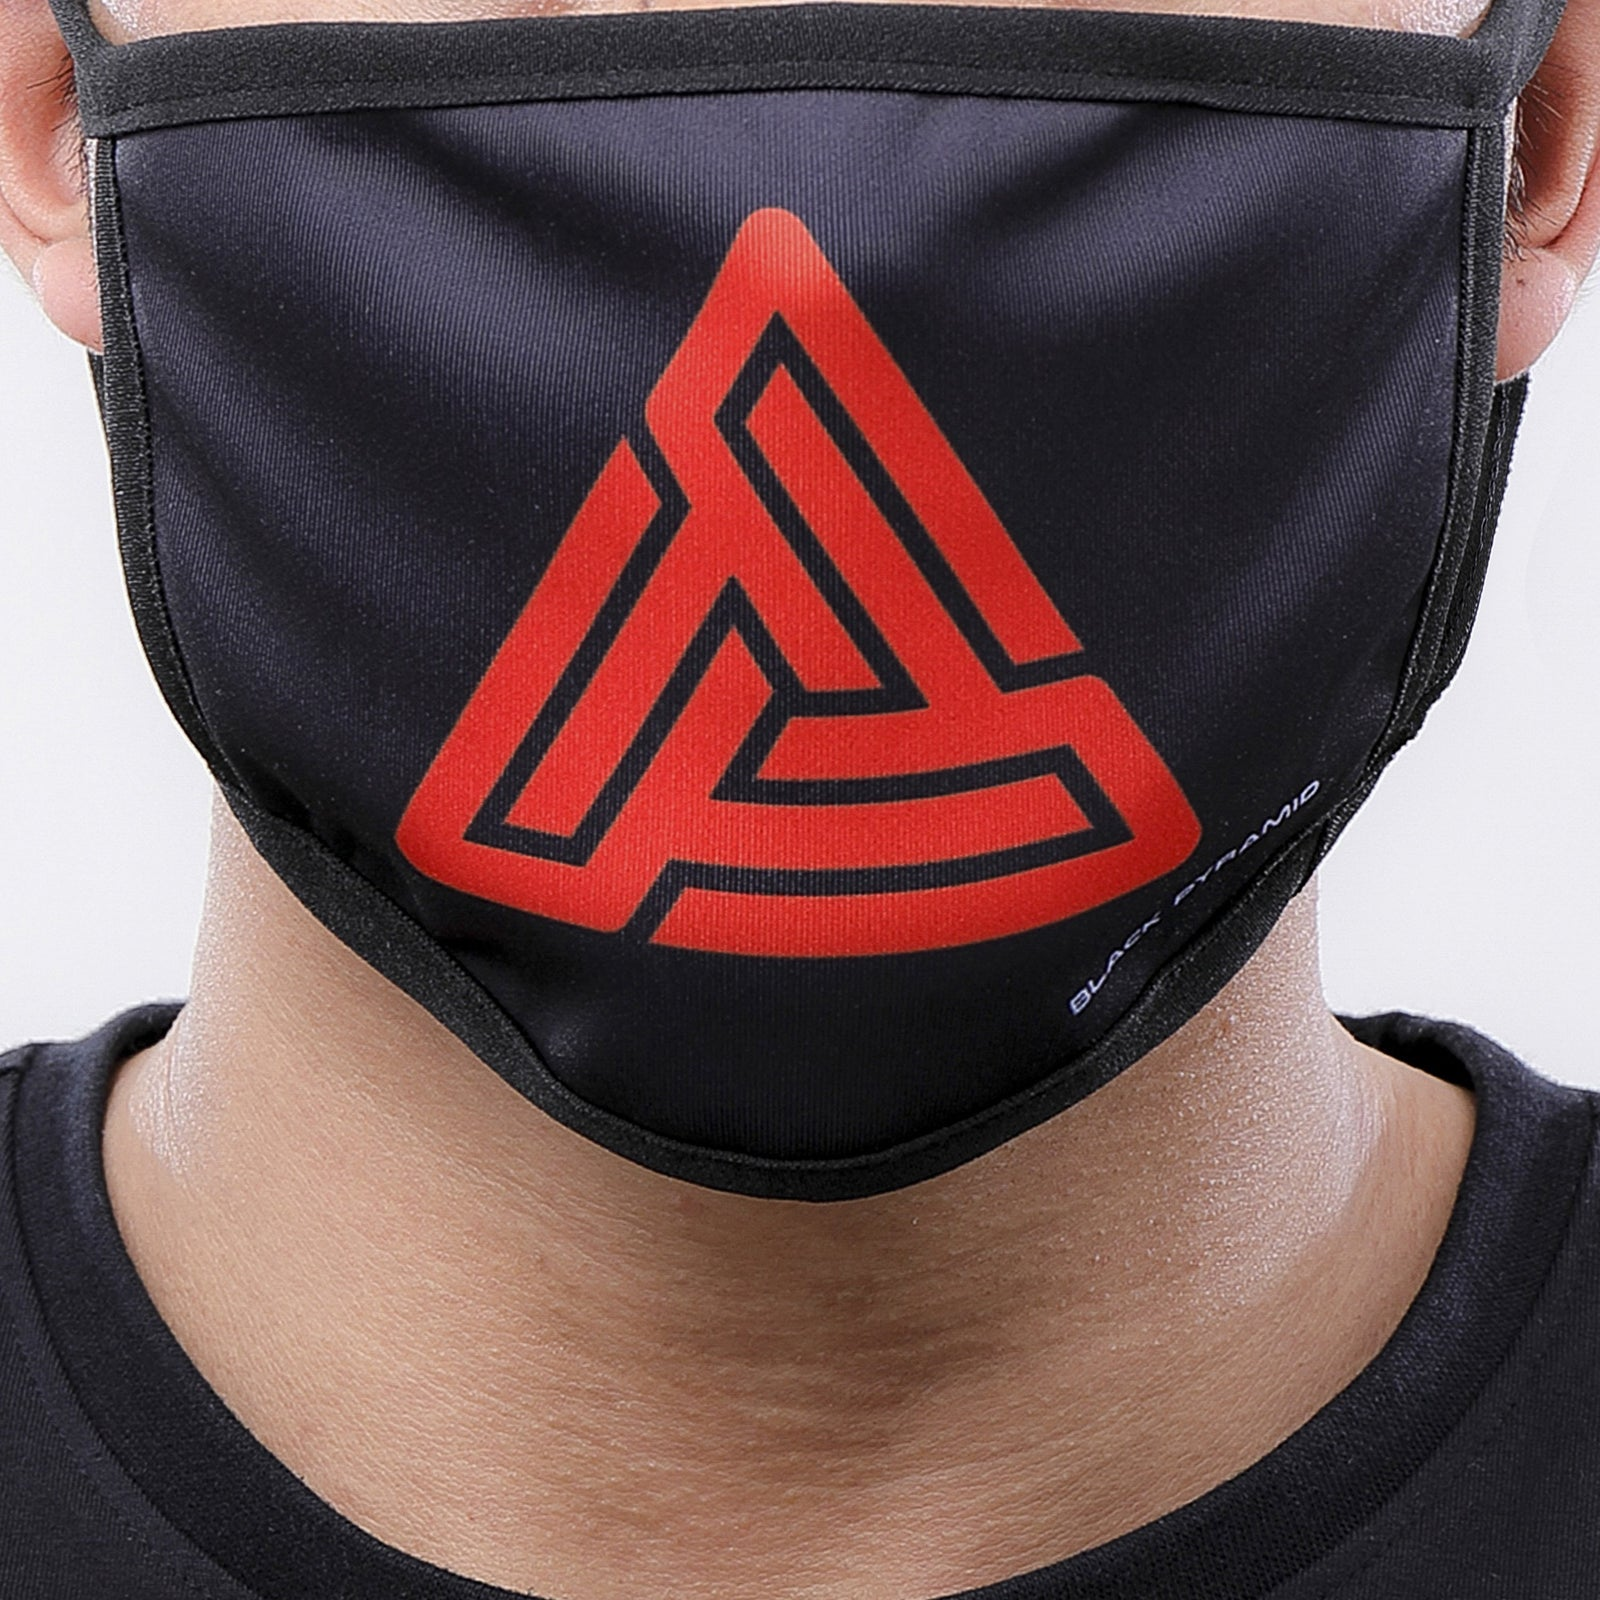 MAZE LOGO FACE MASK - Color: Black | Black